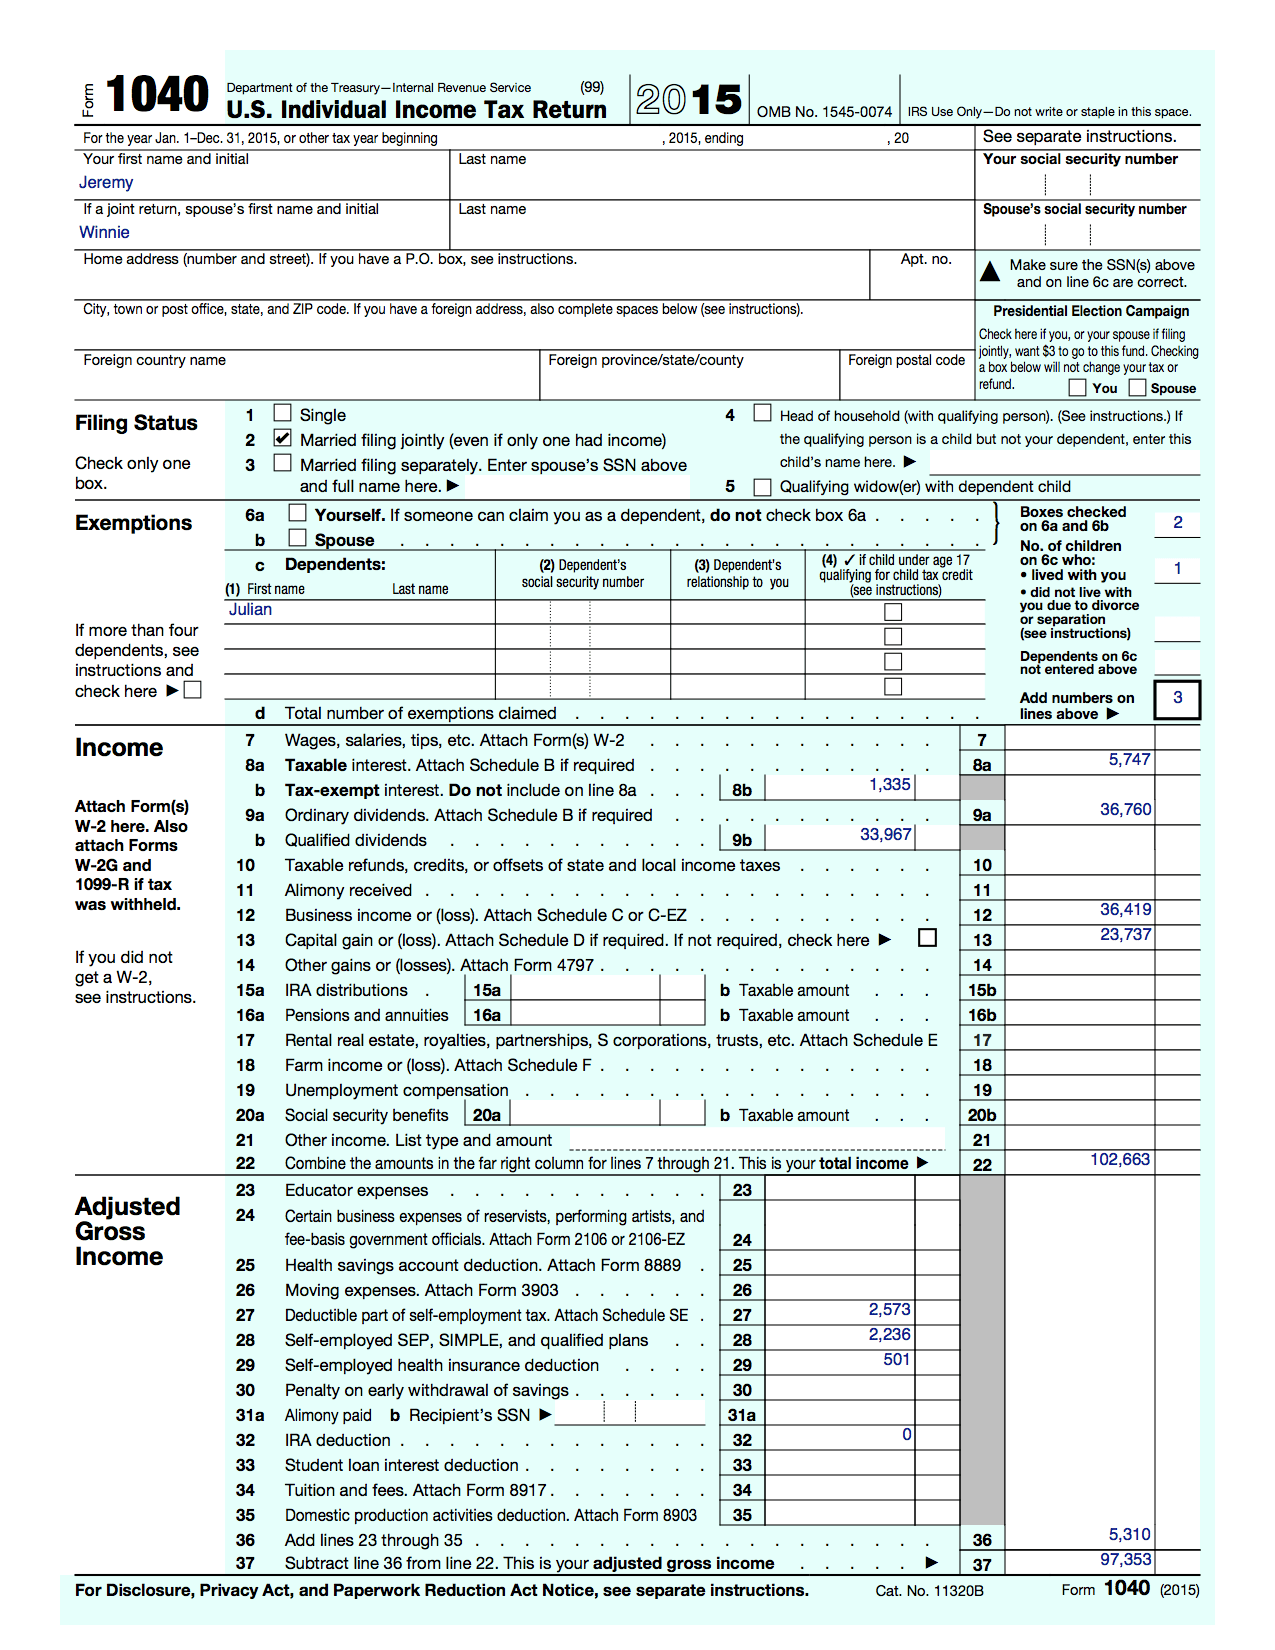 Our 1040 Form 1040 as it appears in Turbo Tax.